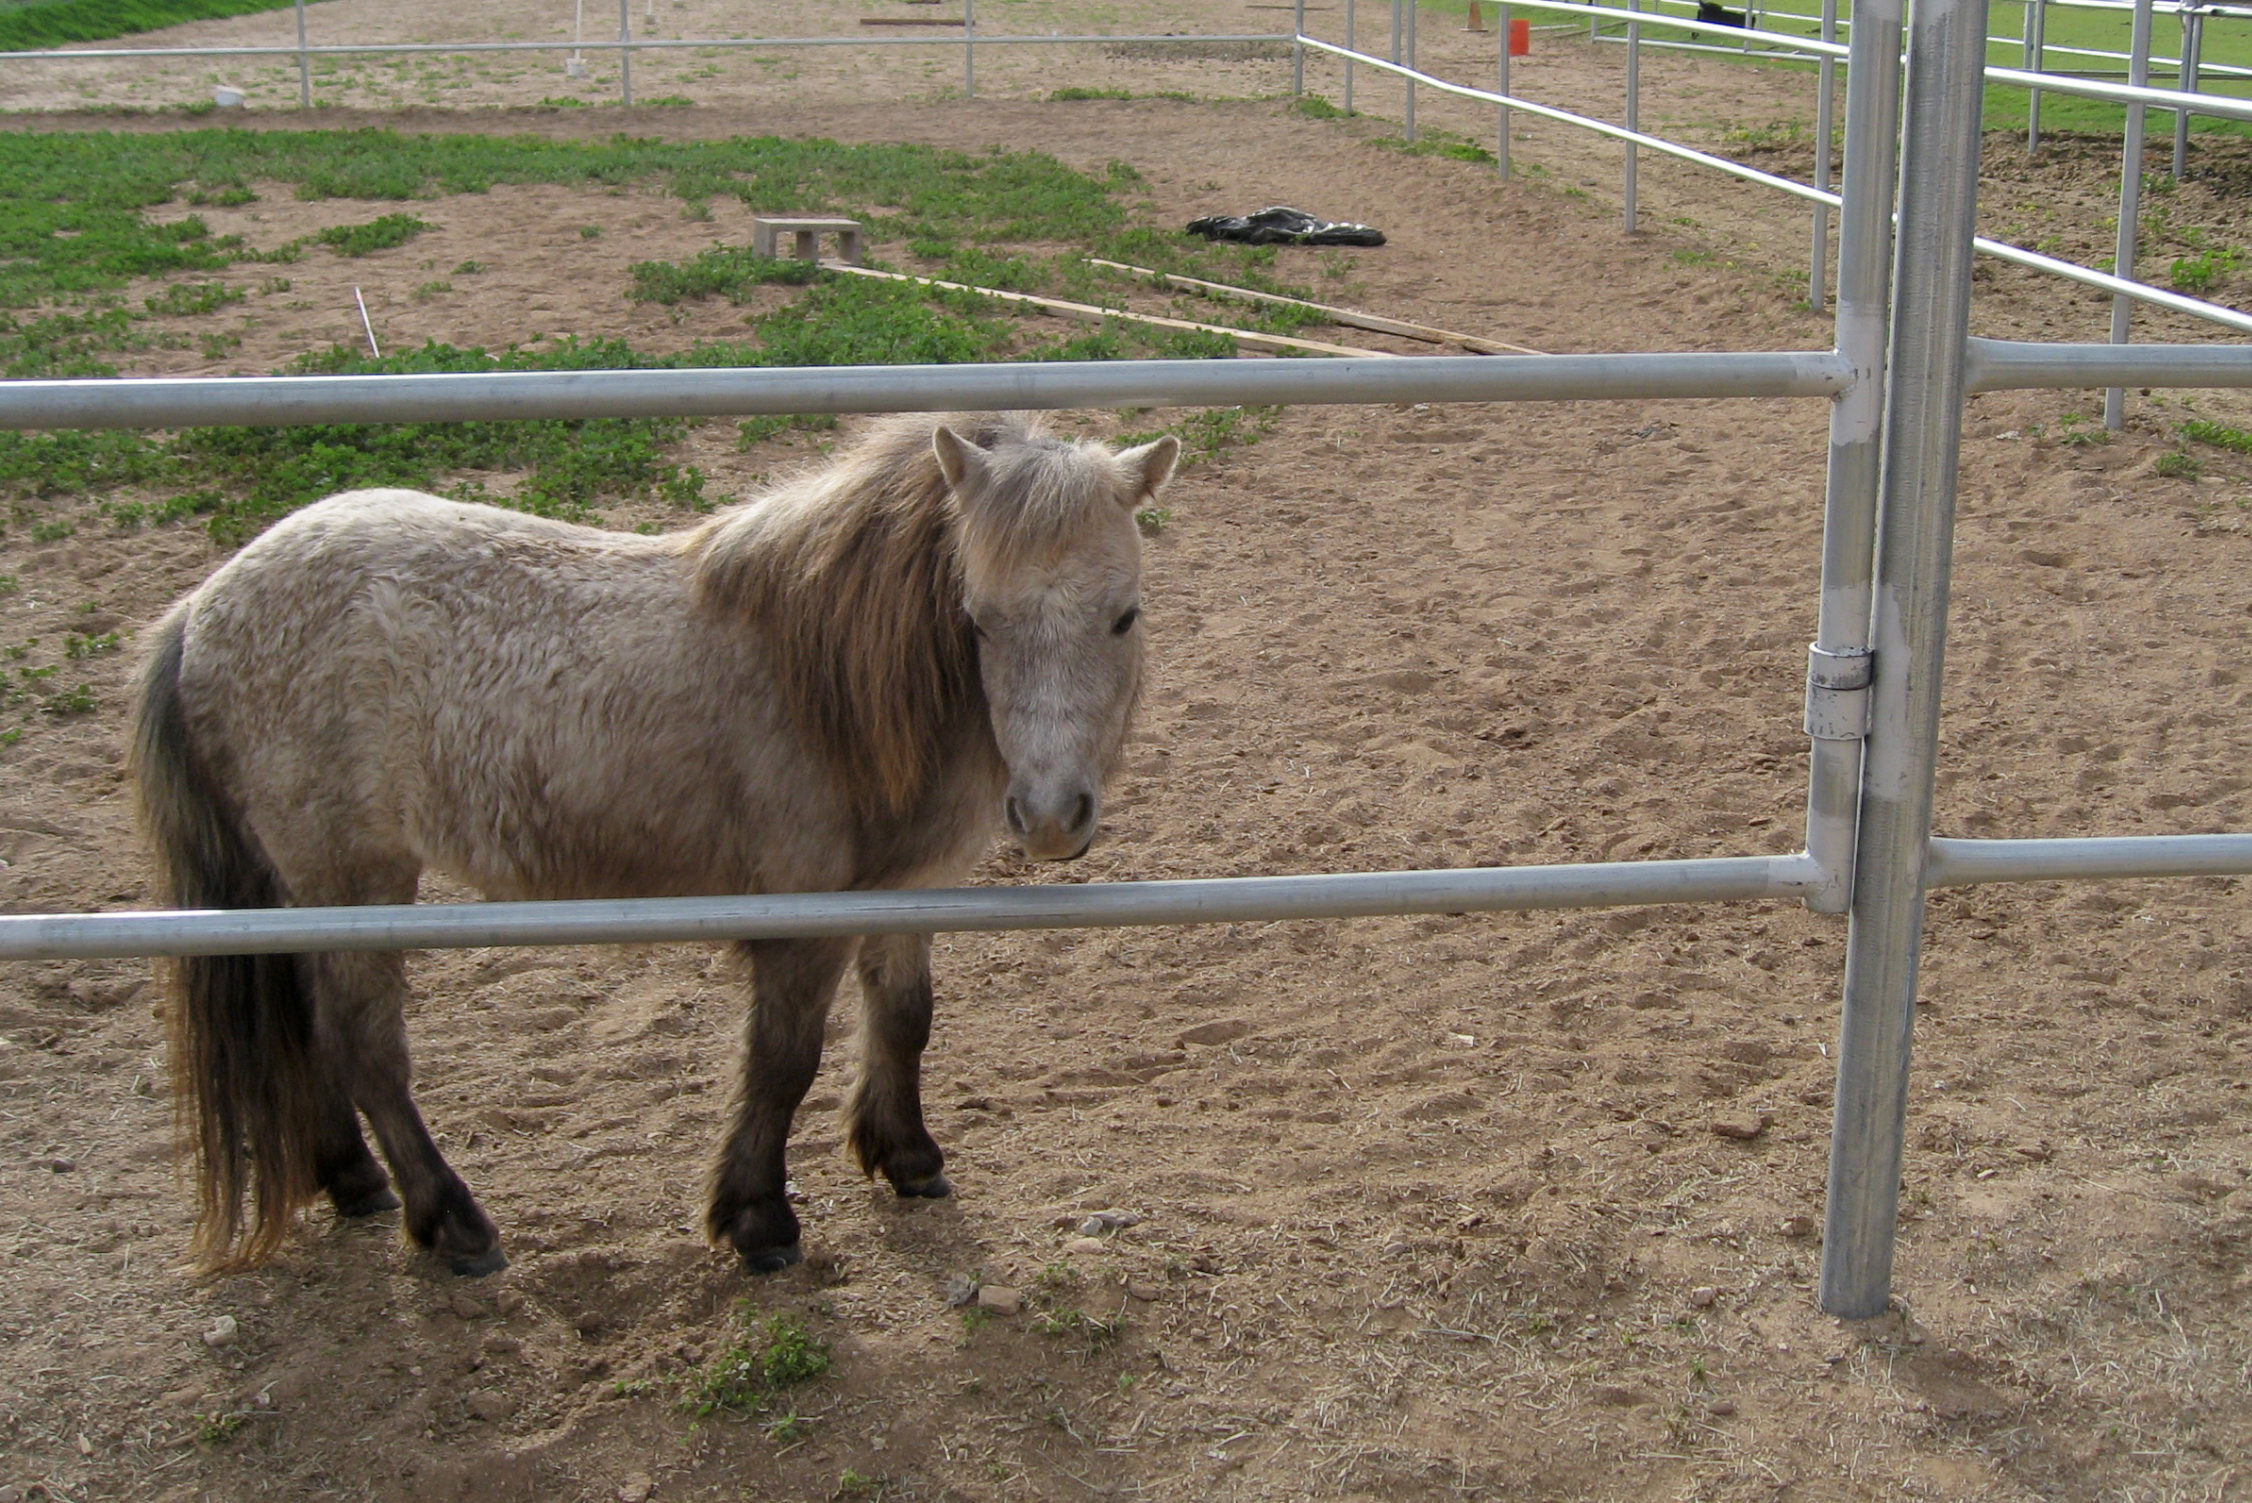 A miniature horse in an enclosure in Waddell, Arizona, March 21, 2010.